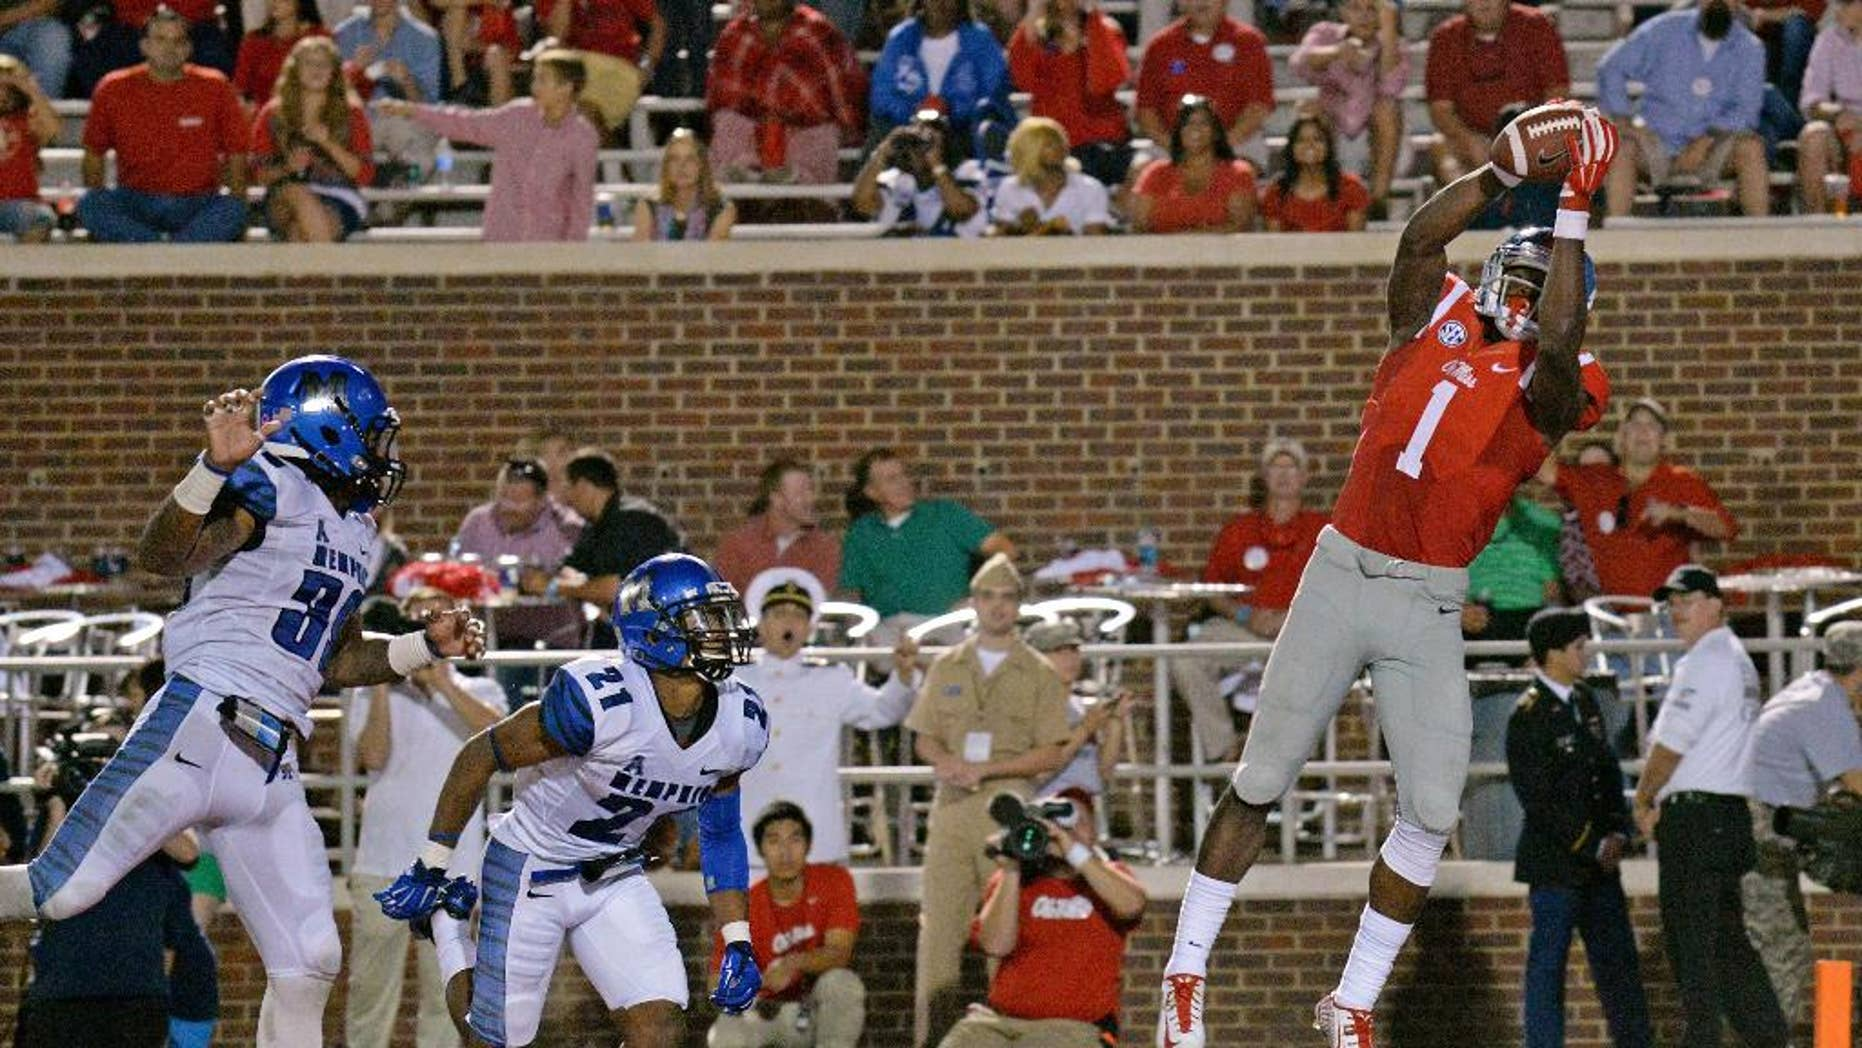 Mississippi wide receiver Laquon Treadwell (1) catches a touchdown pass as Memphis defensive backs Reggis Ball (39) and Bobby McCain (21) watch during the second half of an NCAA college football game in Oxford, Miss., Saturday, Sept. 27, 2014. No. 10 Mississippi won 24-3. (AP Photo/The Daily Mississippian, Thomas Graning)